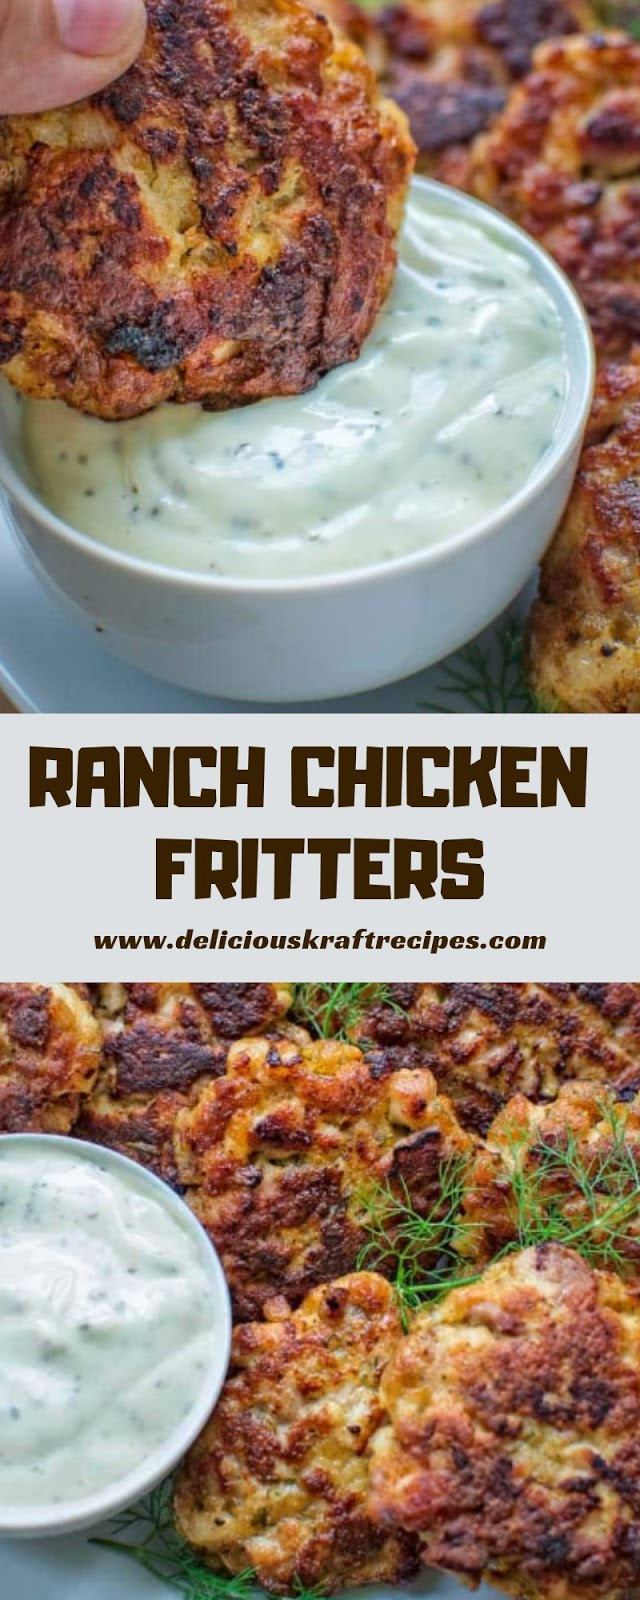 RANCH CHICKEN FRITTERS